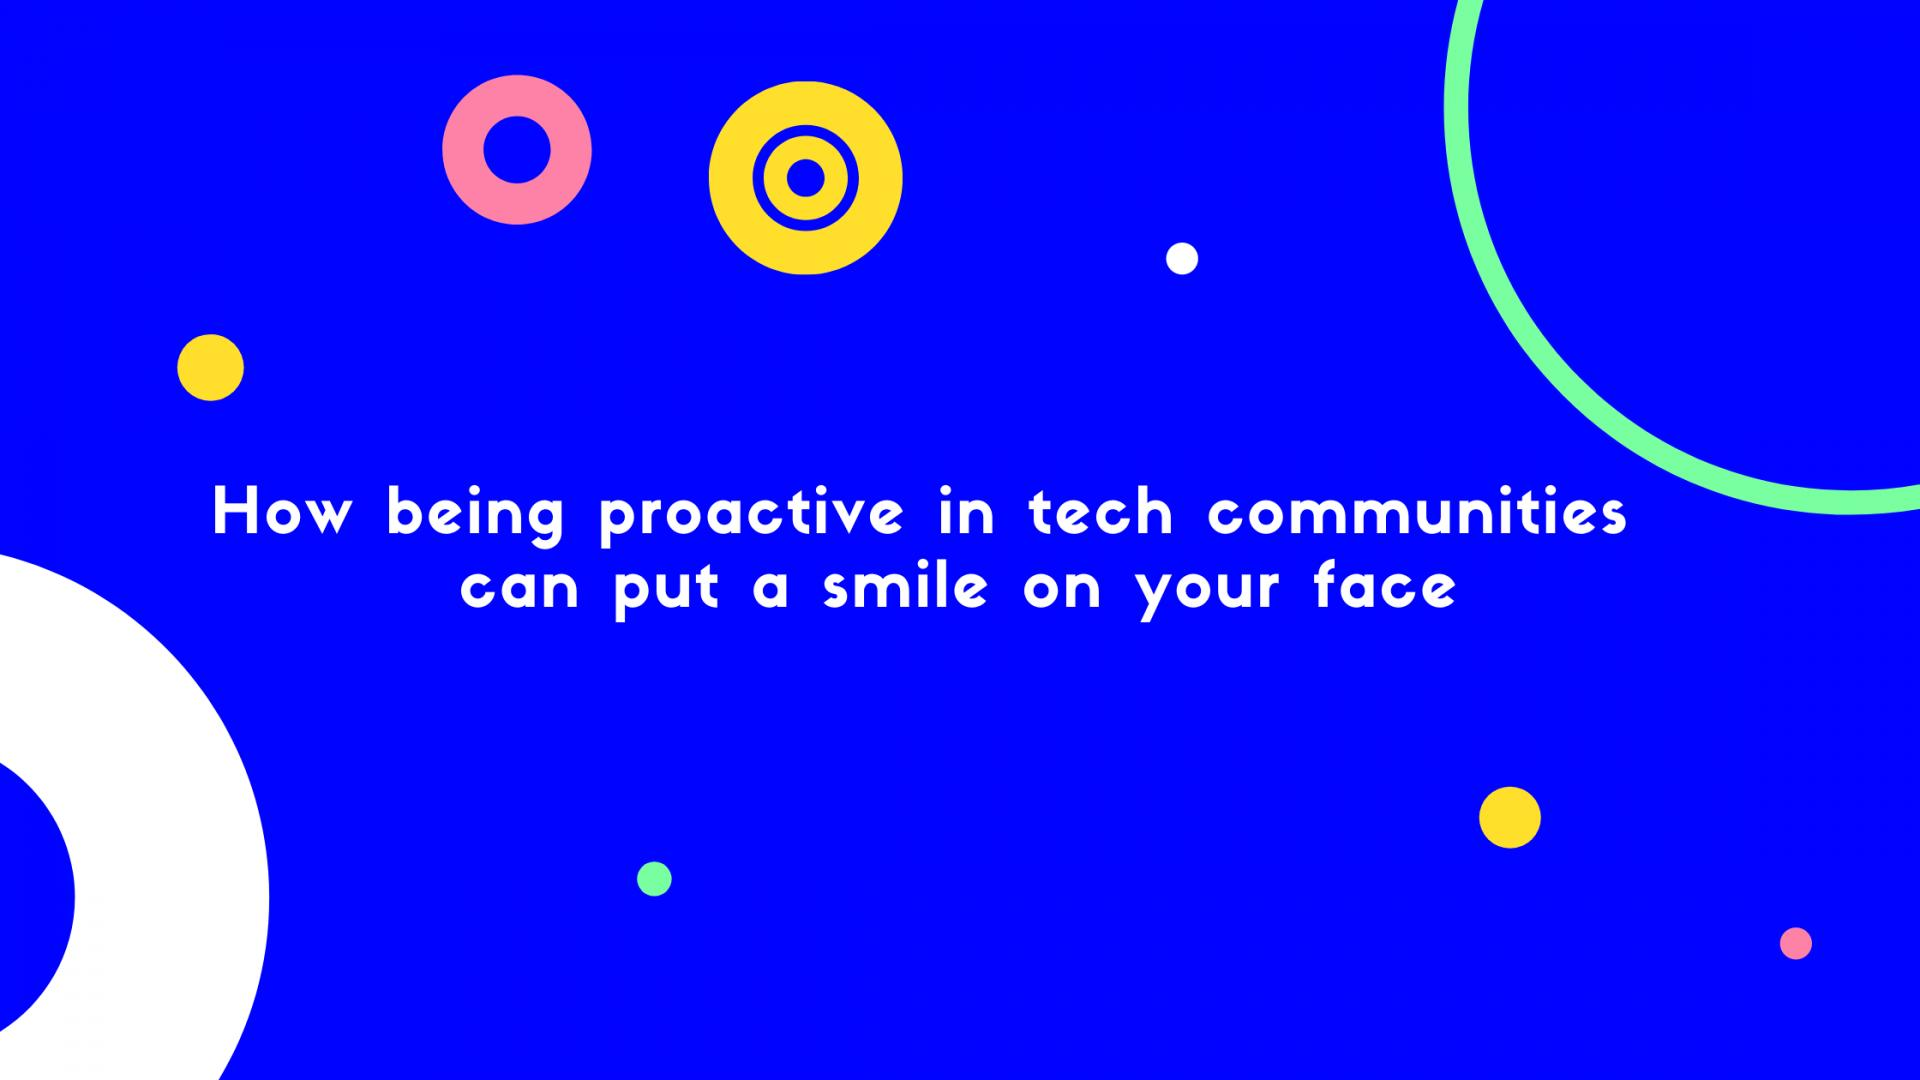 How being proactive in tech communities can bring a smile on your face